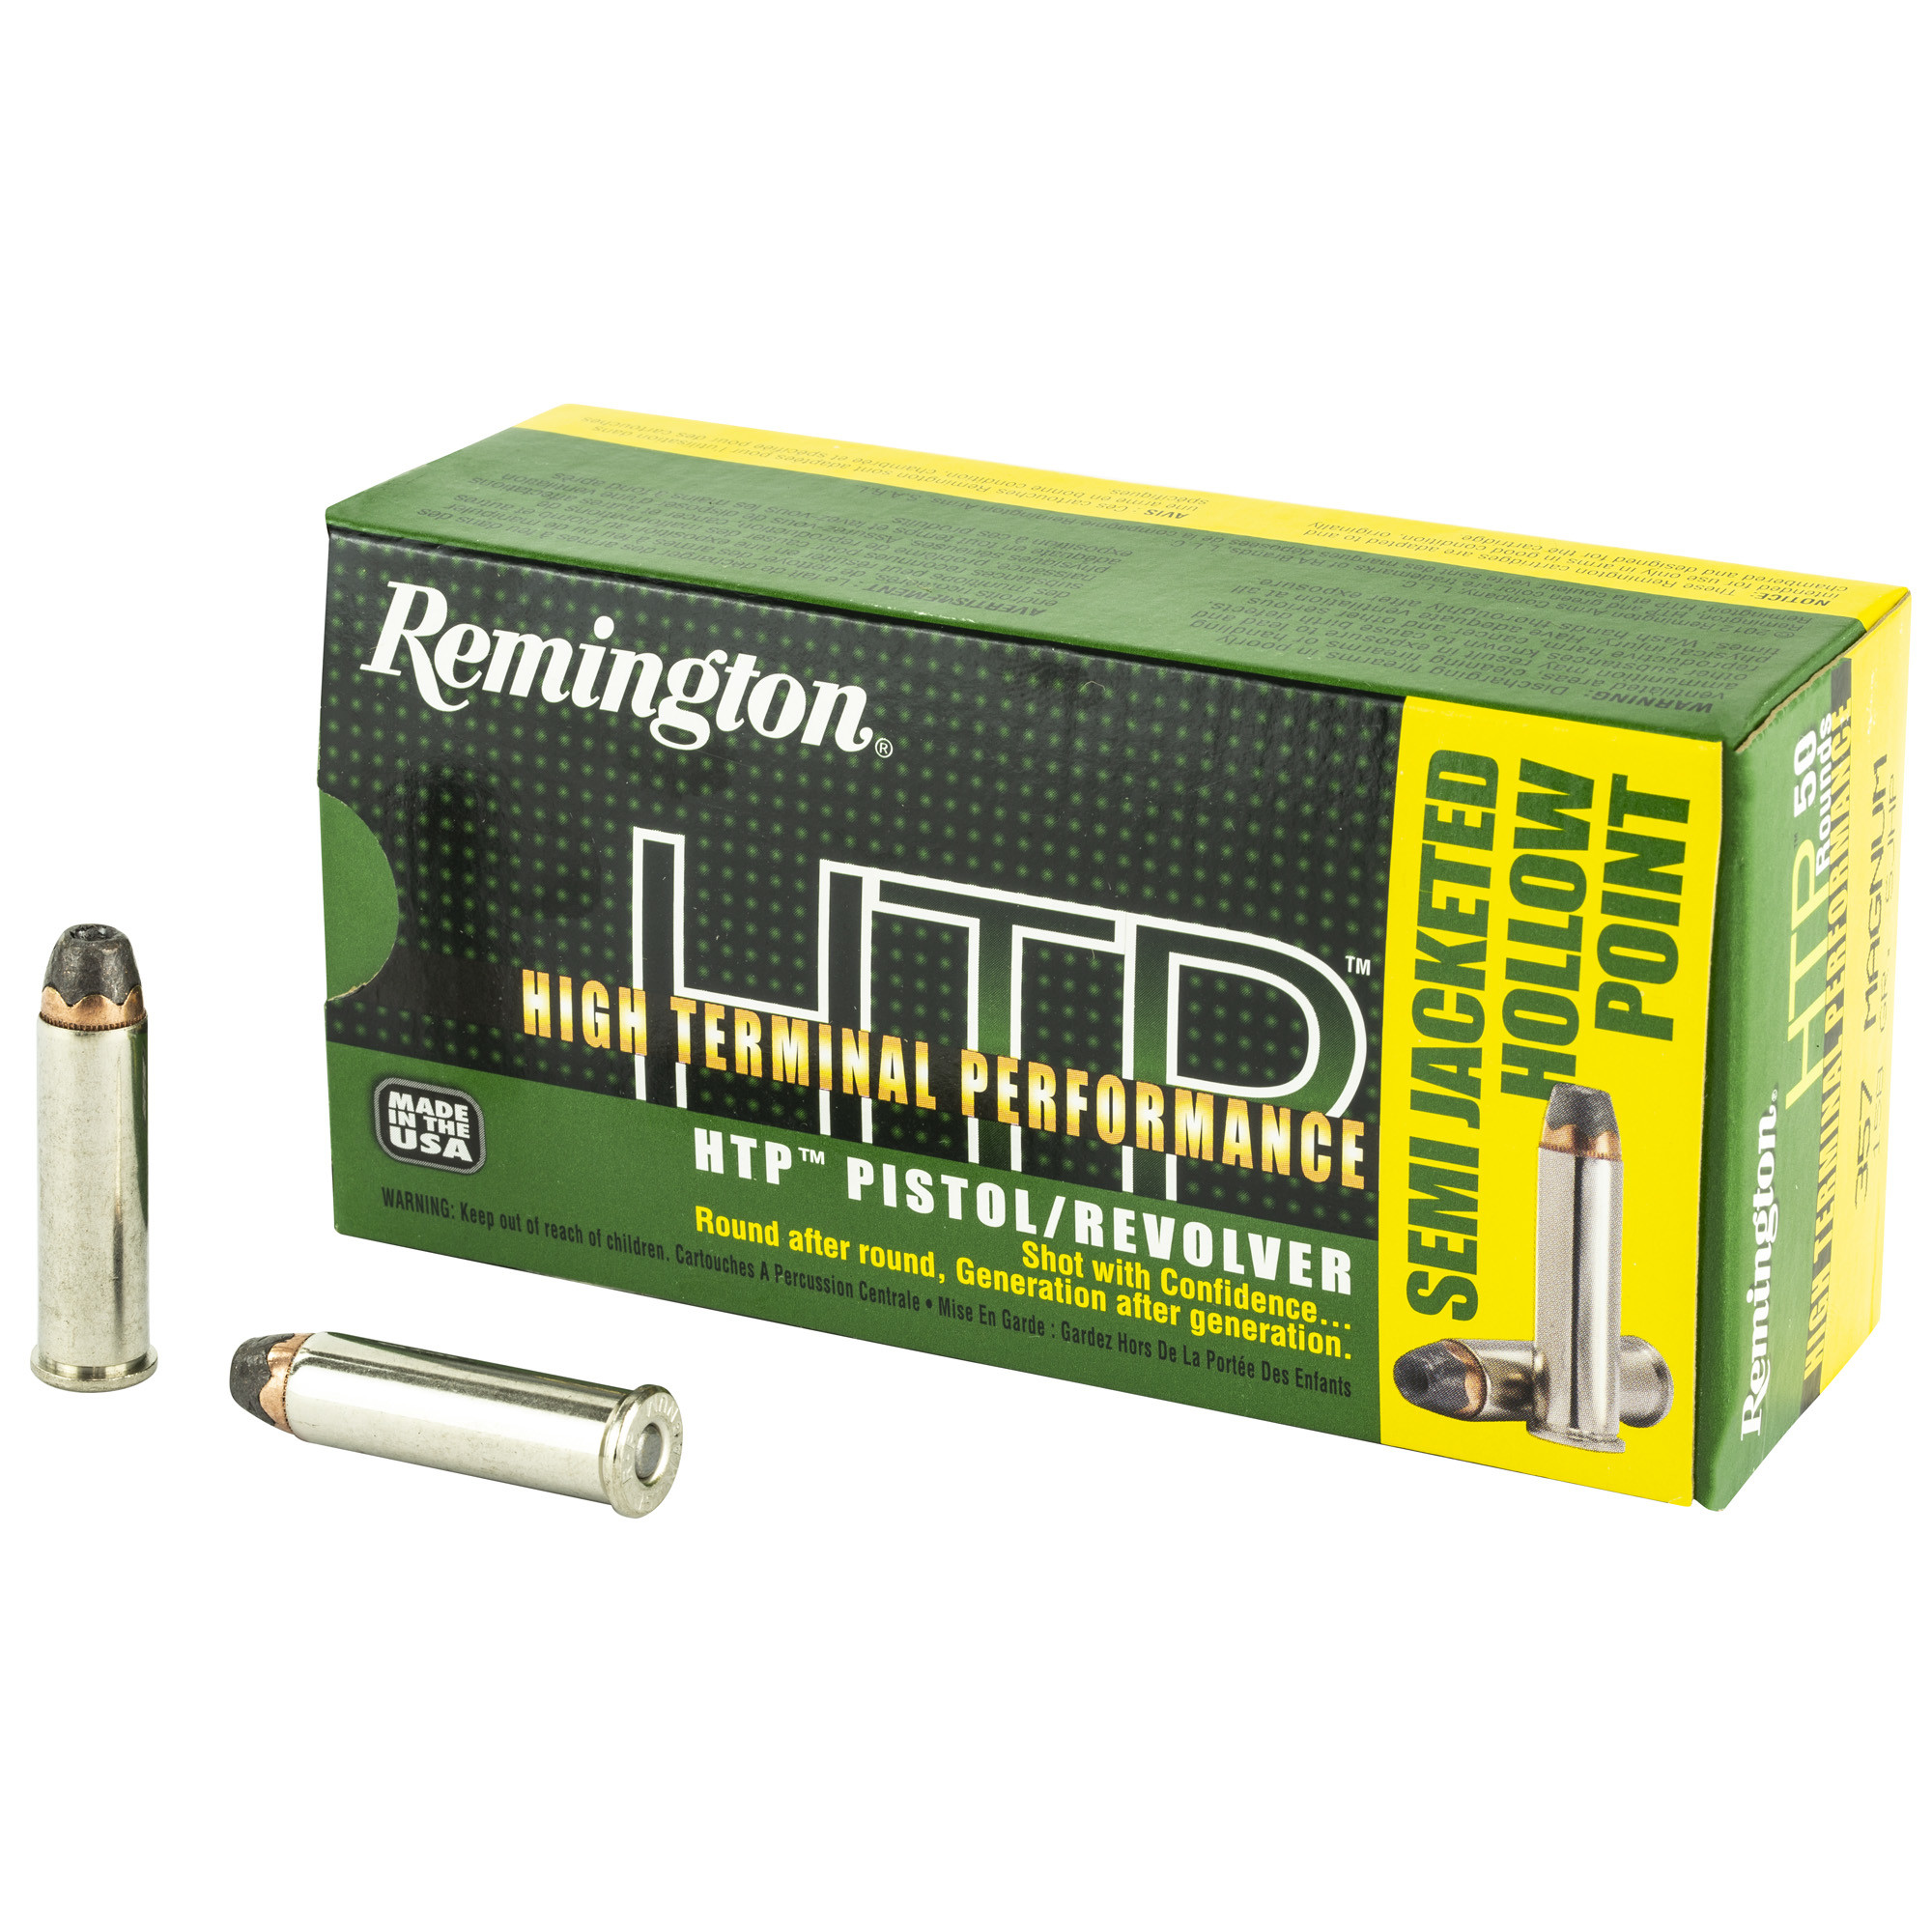 Remington HTP Ammunition 357 Magnum 110GR Semi-Jacketed Hollow Point Per 20